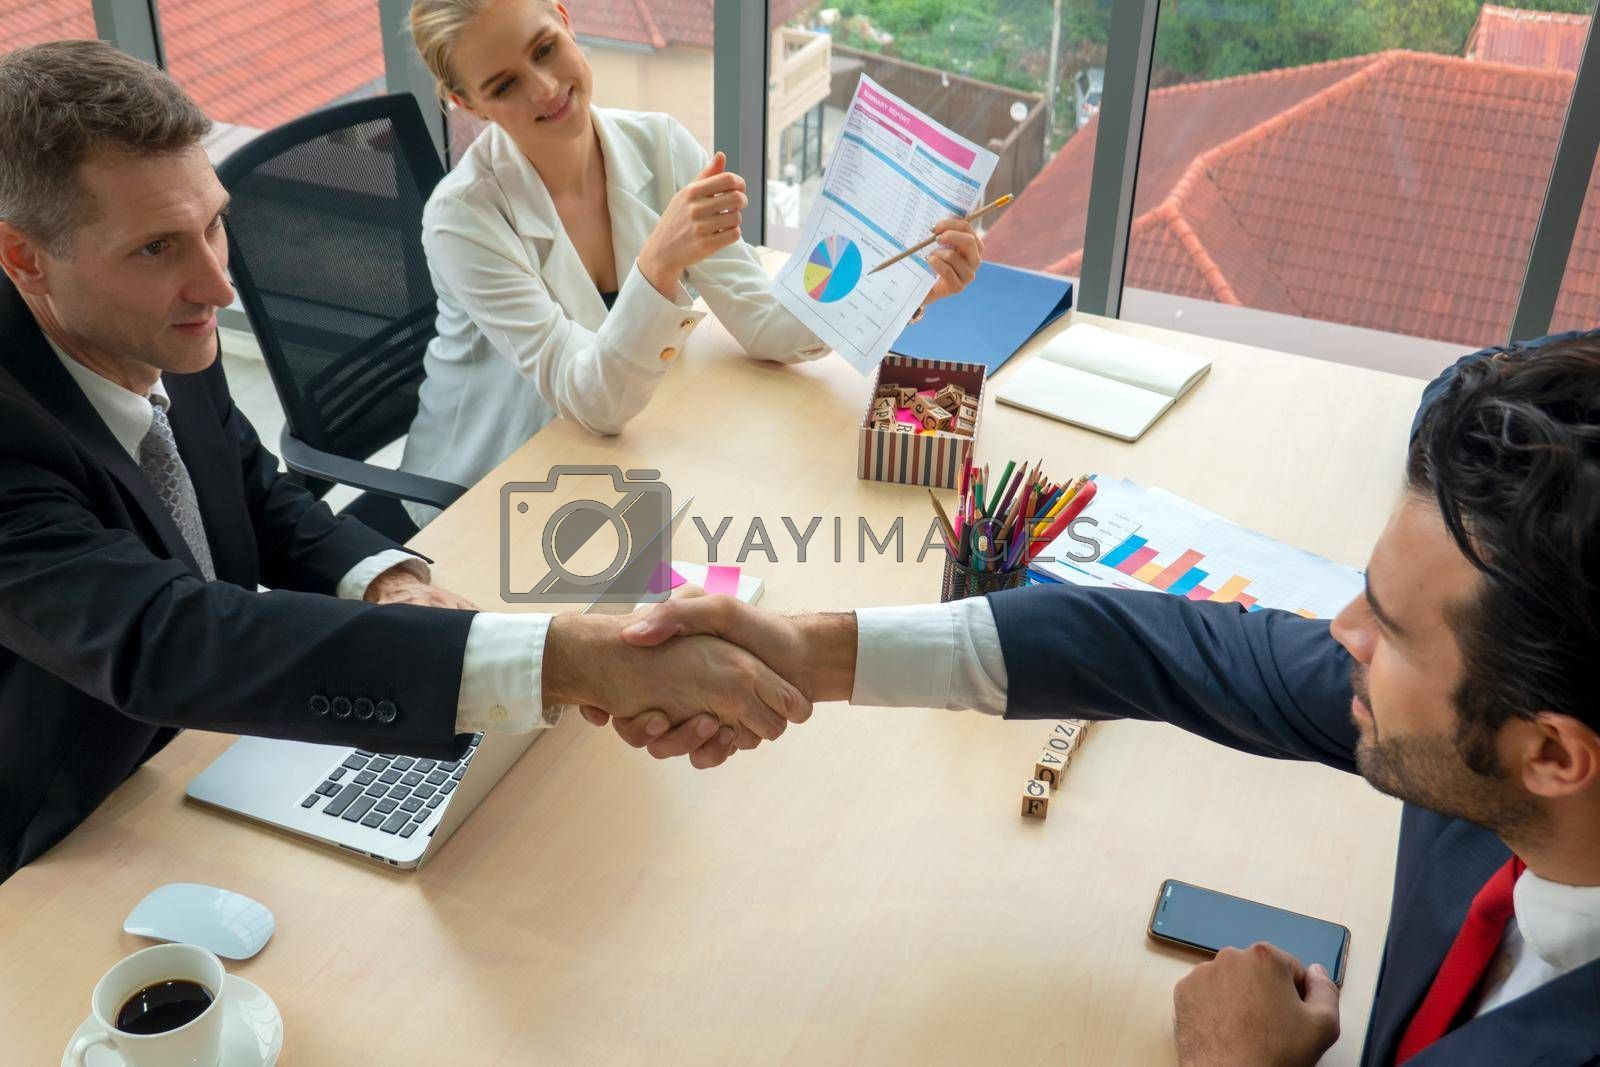 Business people shaking hands in the modern office finishing successful meeting